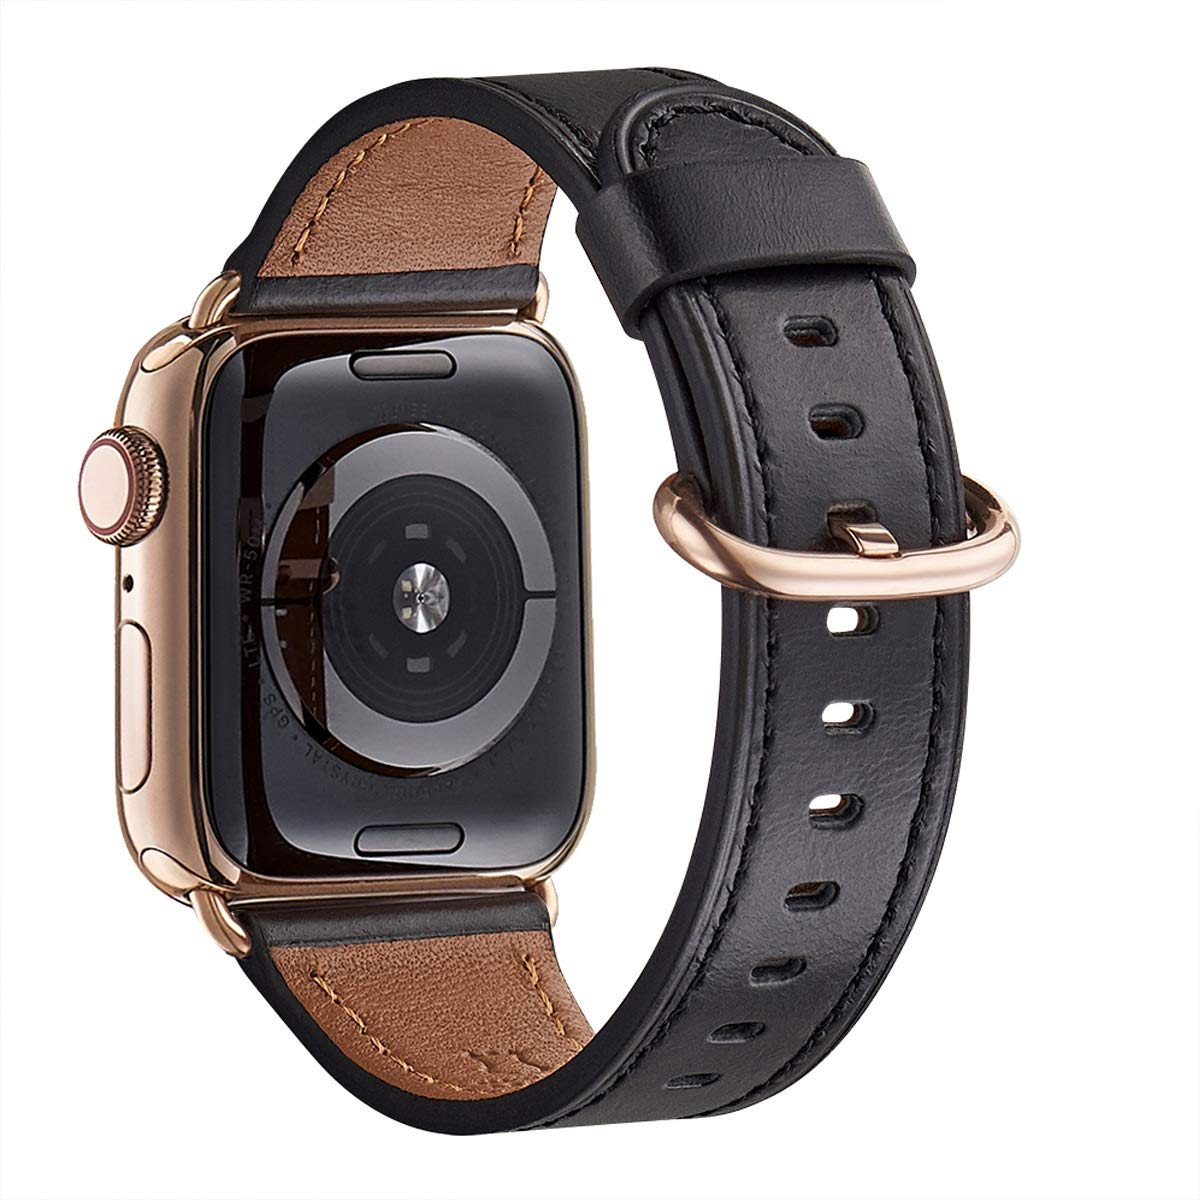 WFEAGL Compatible iWatch Band 40mm 38mm, Top Grain Leather Band with Gold Adapter (The Same as Series 4 with Gold Stainless Steel Case in Color) for iWatch Series 4/3/2/1(Black Band+Gold Adapter)